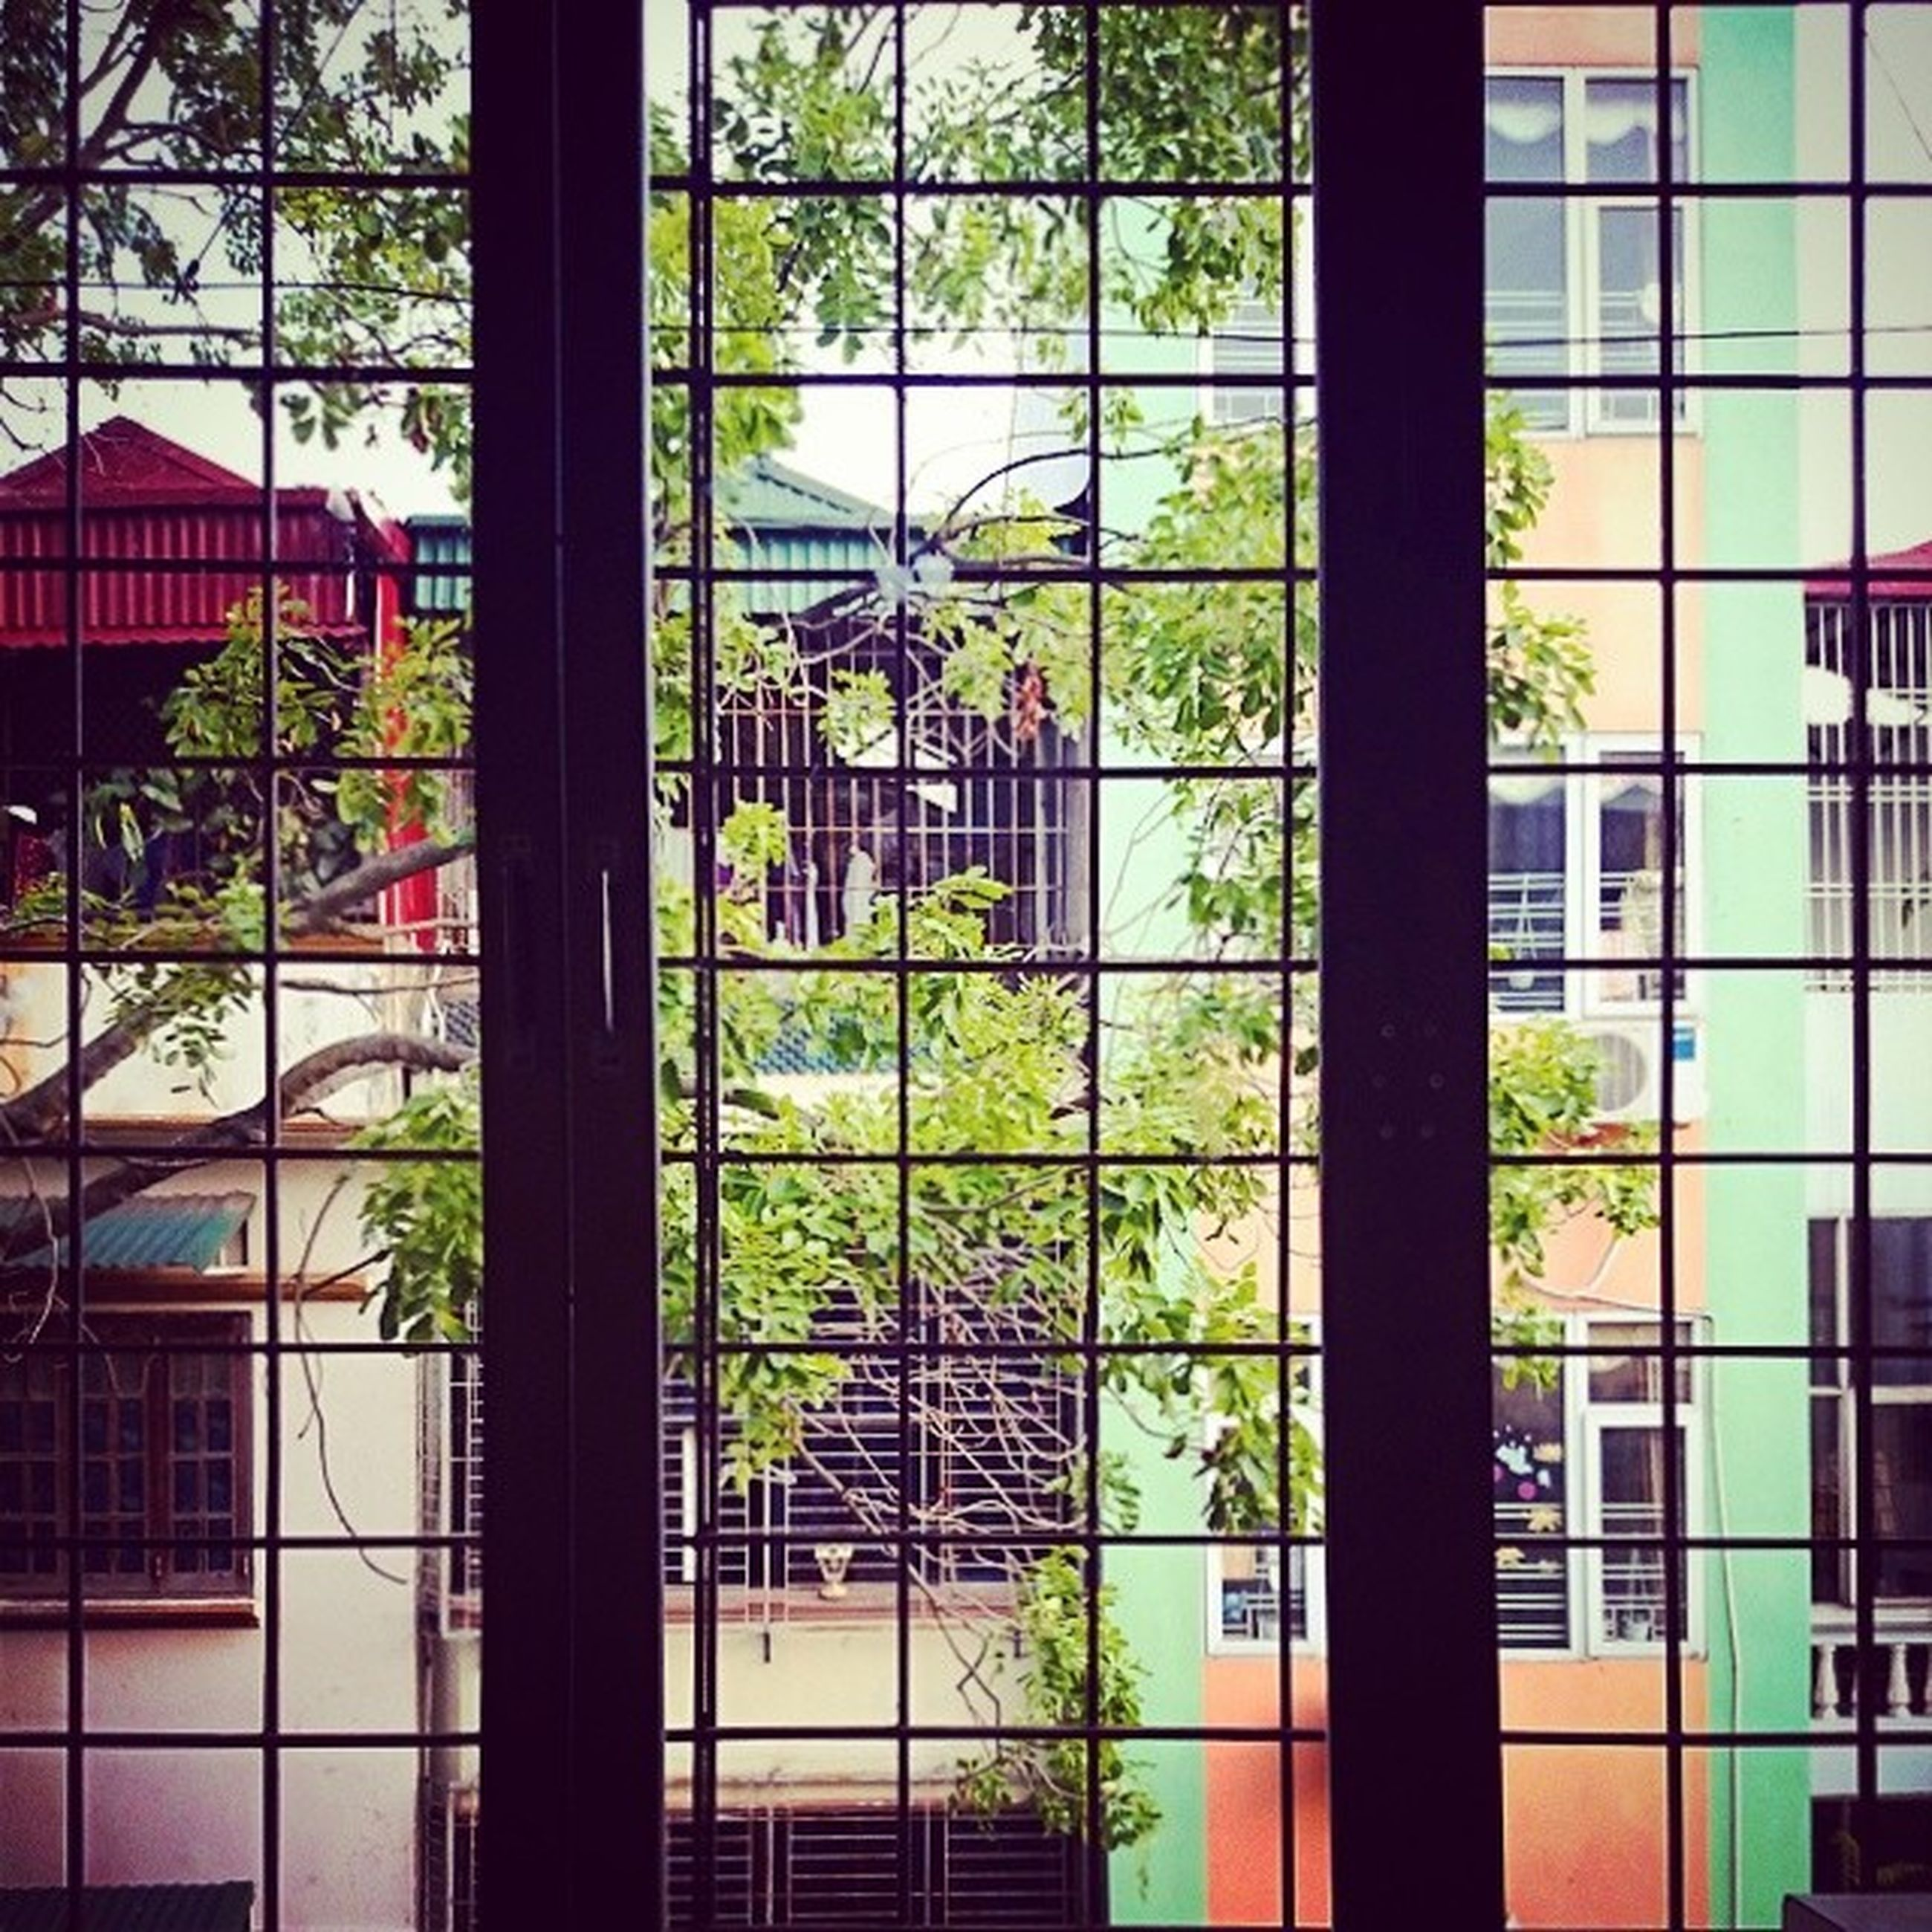 window, glass - material, architecture, built structure, indoors, building exterior, transparent, tree, plant, potted plant, glass, growth, window sill, house, reflection, building, day, closed, art, no people